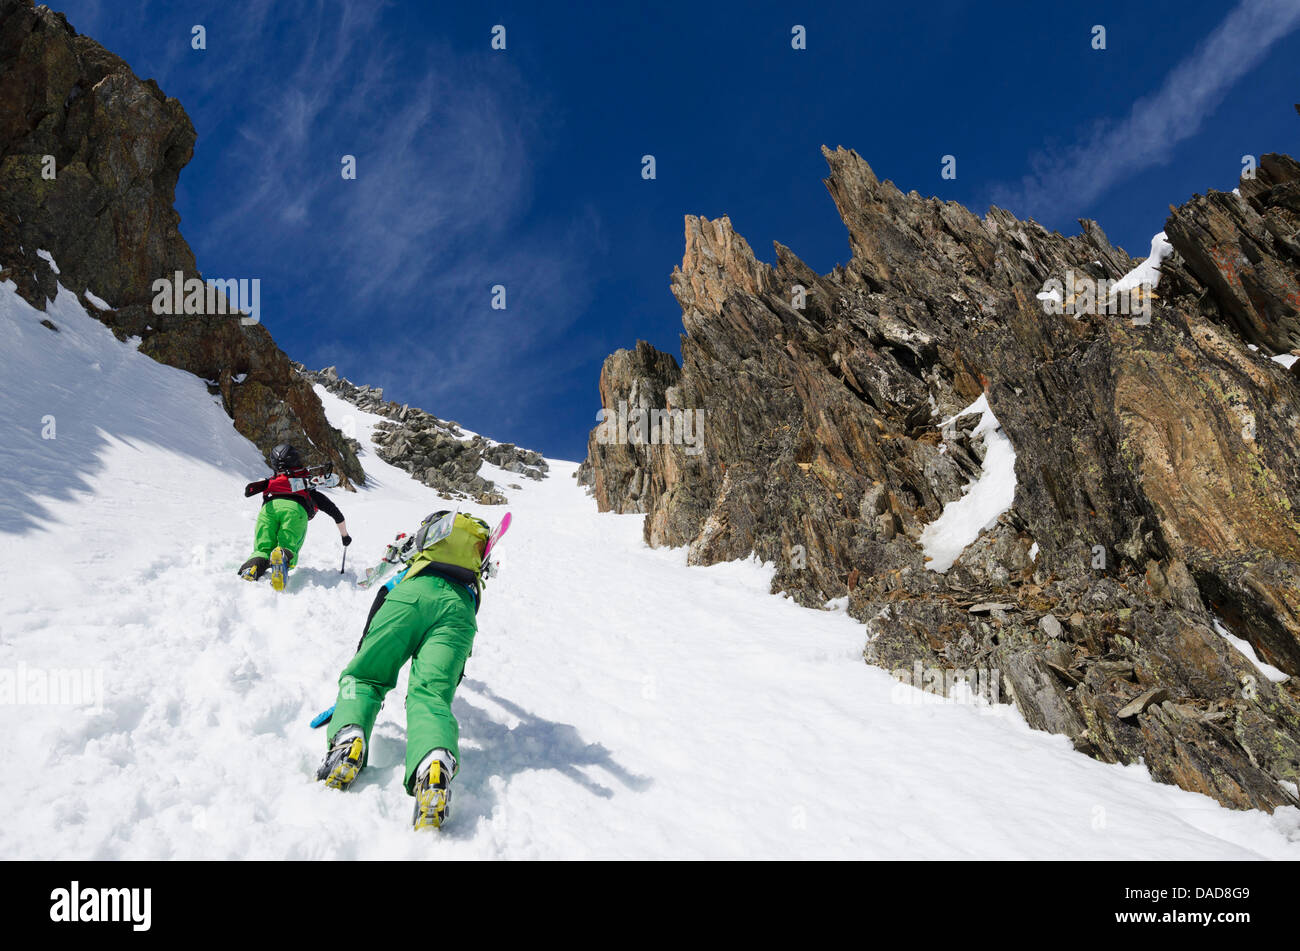 Col du Passon off piste ski touring area, Chamonix Valley, Haute-Savoie, French Alps, France, Europe - Stock Image